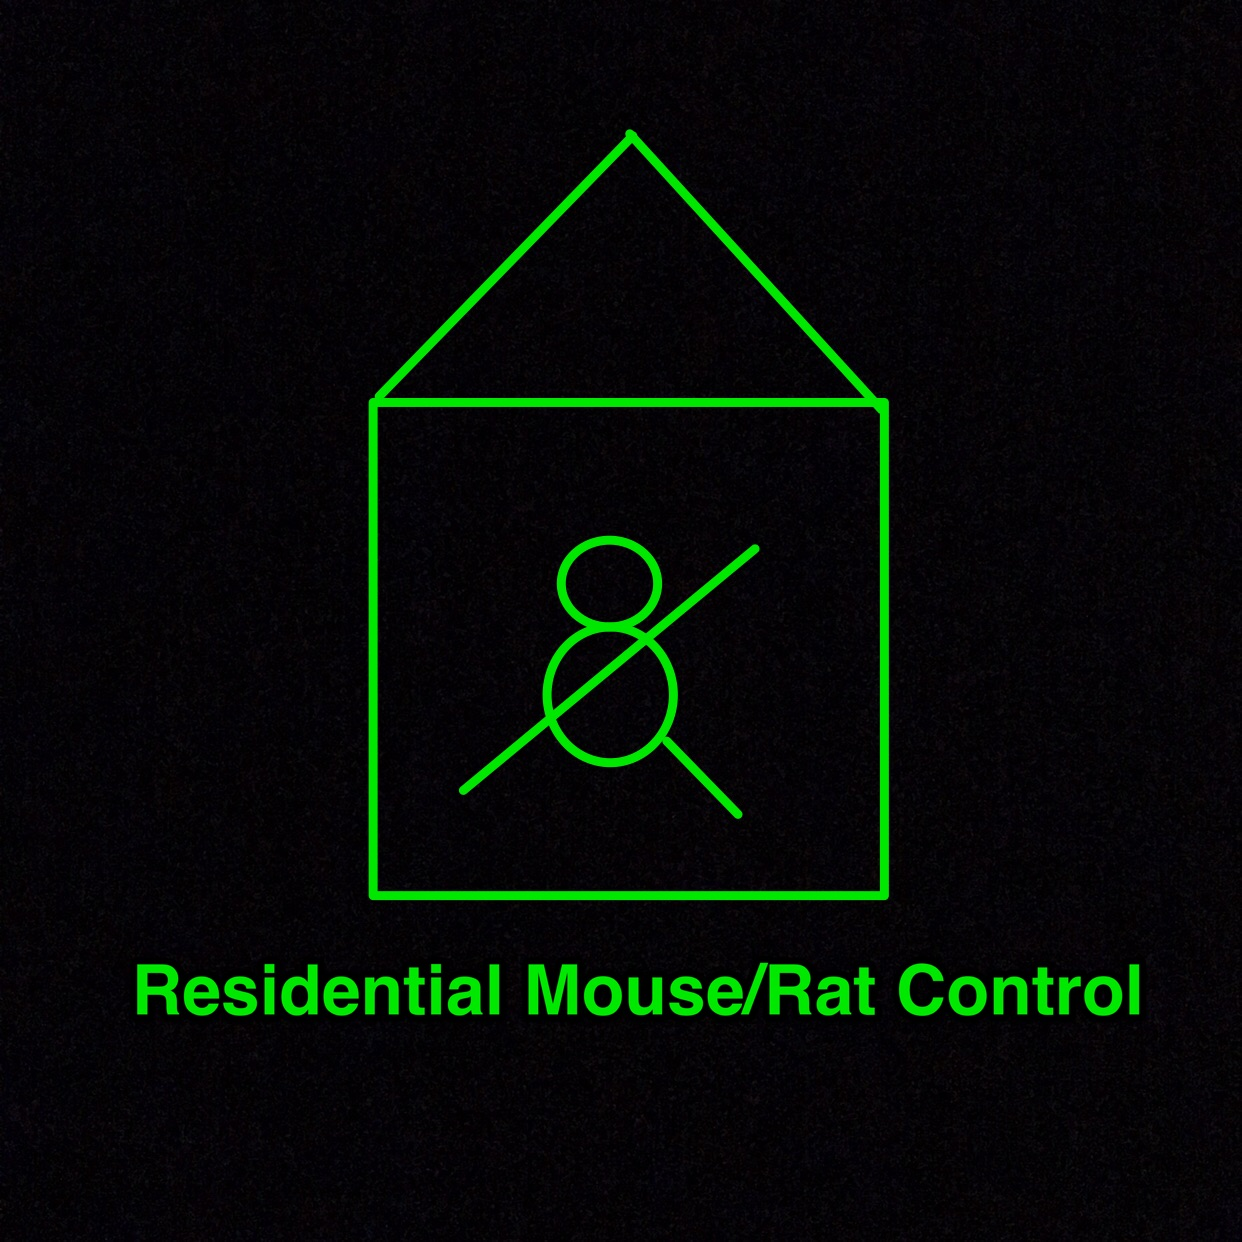 Residential Mouse/Rat Control